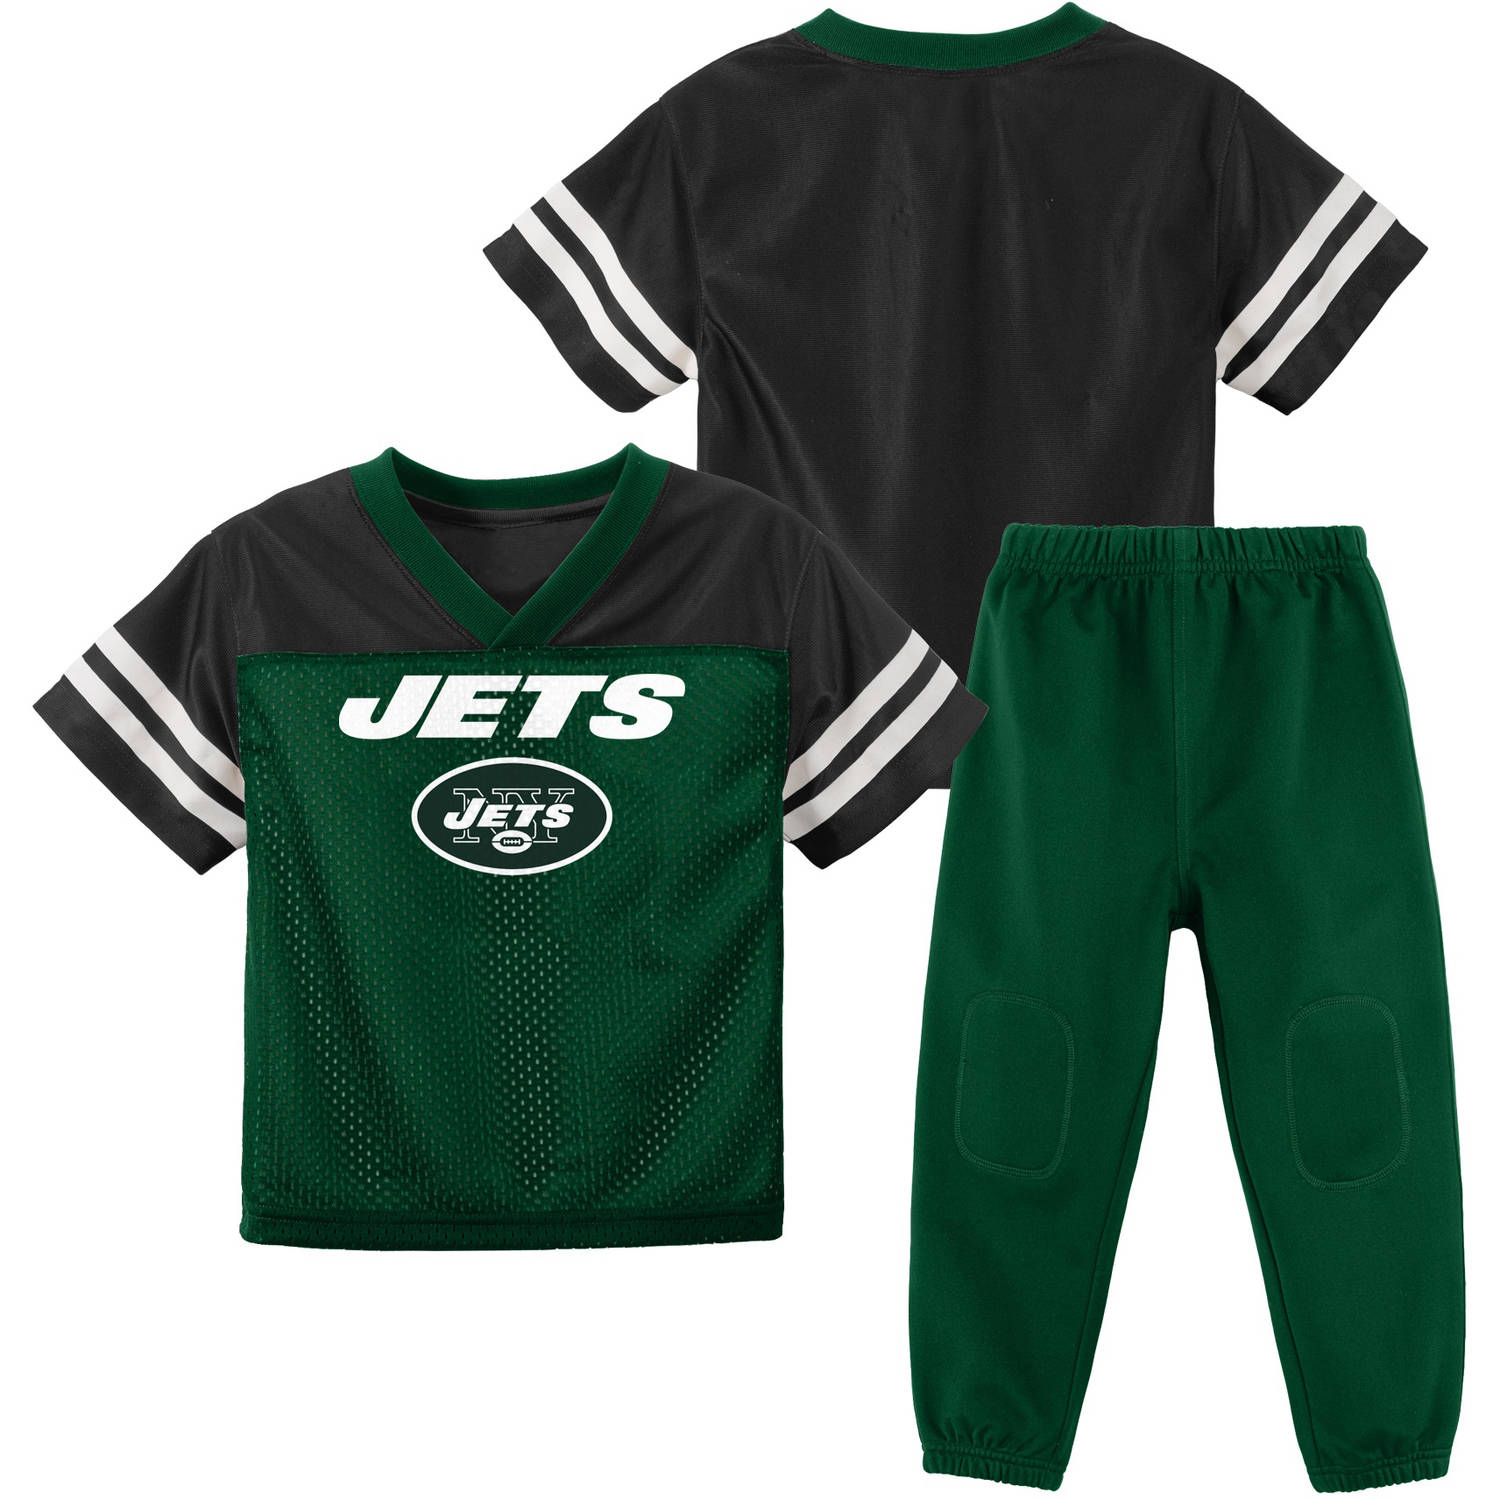 NFL New York Jets Toddler Short Sleeve Top and Pant Set